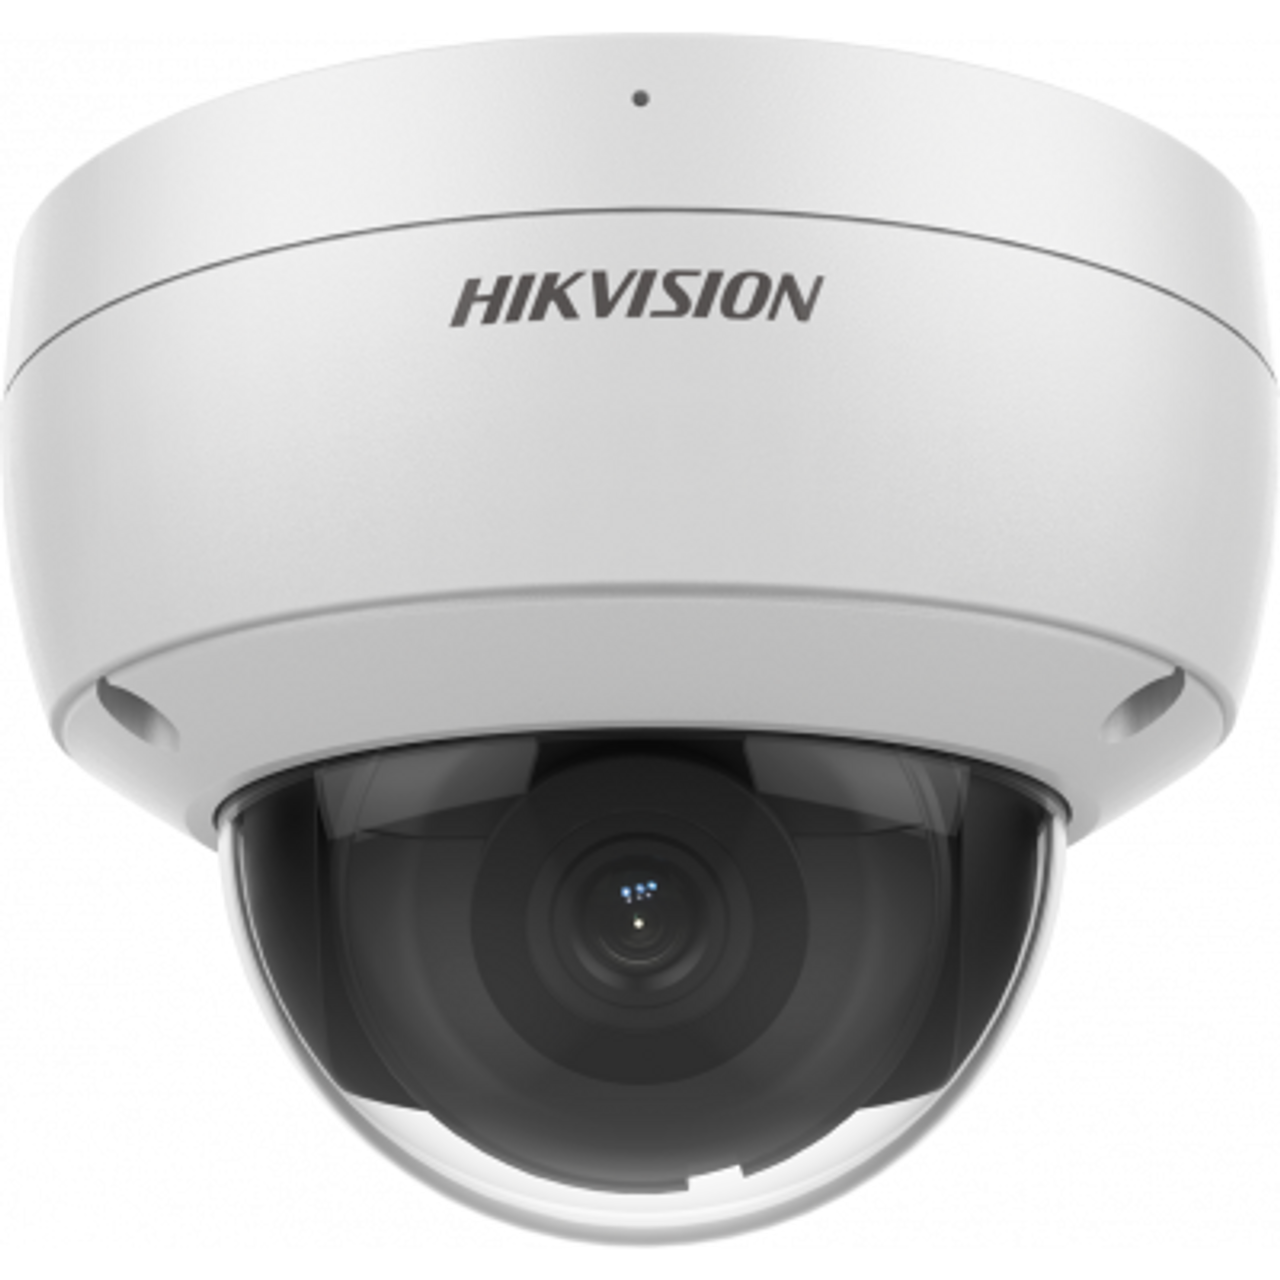 Hikvision AcuSense DS-2CD2166G2 2.8mm Lens 6MP Internal Vandal Dome Camera With IR, Built-in mic